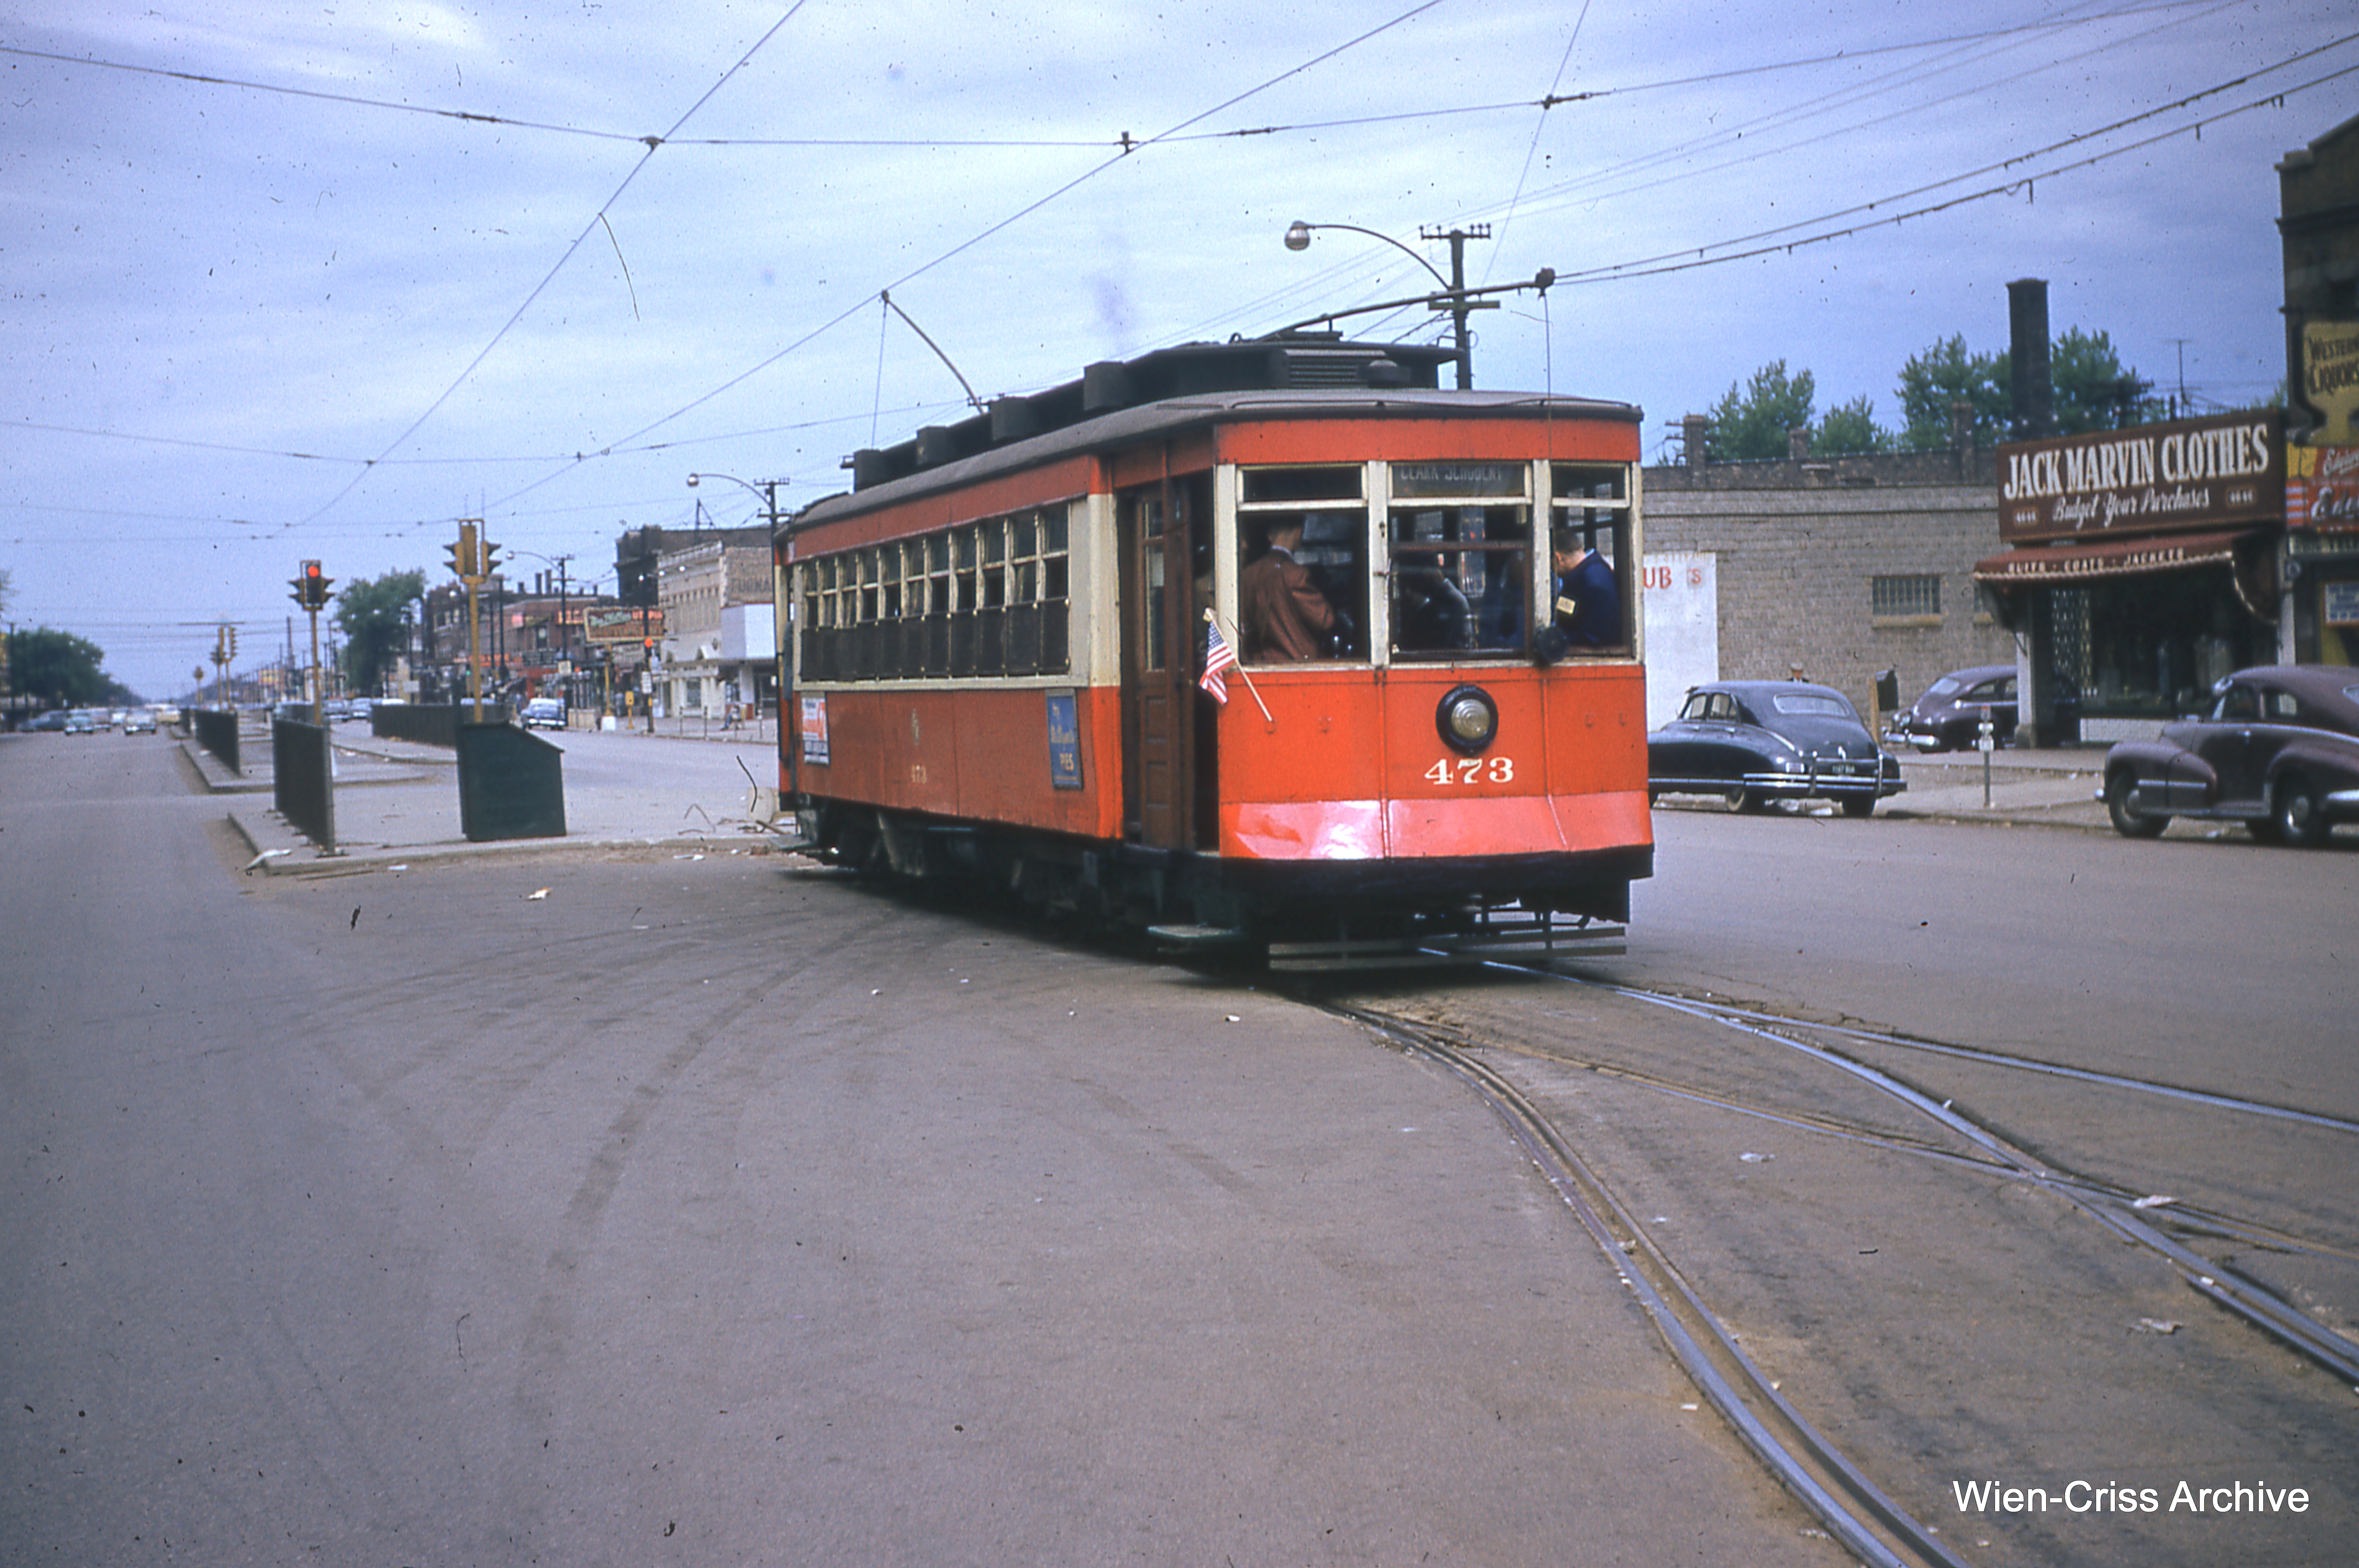 june @cera: a farewell fantrip on chicago's red streetcars – cera